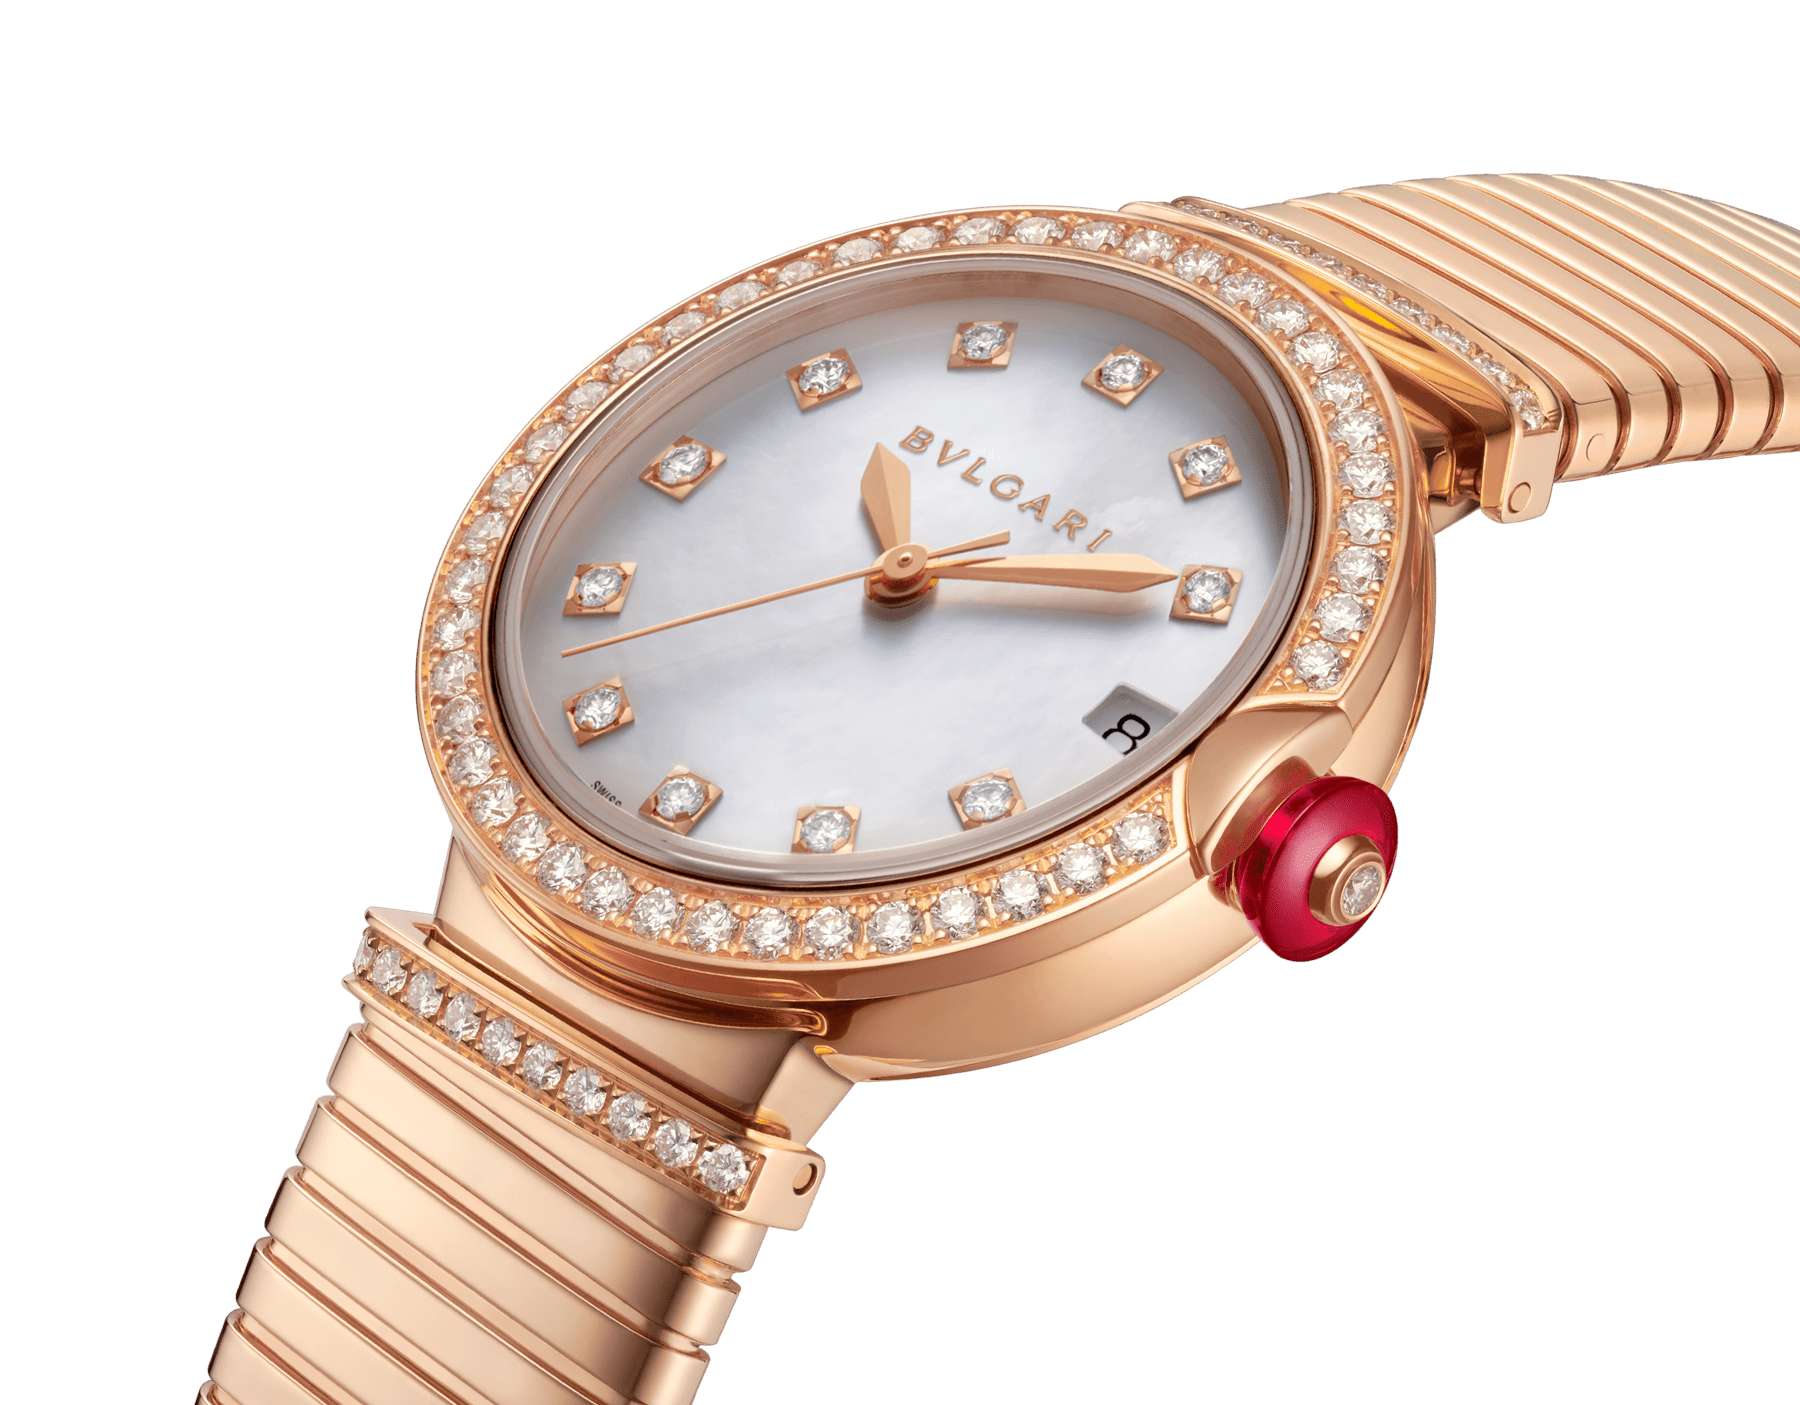 LVCEA Tubogas watch with 18 kt rose gold case set with diamonds, white mother-of-pearl dial, diamond indexes and 18 kt rose gold tubogas bracelet 103034 image 2